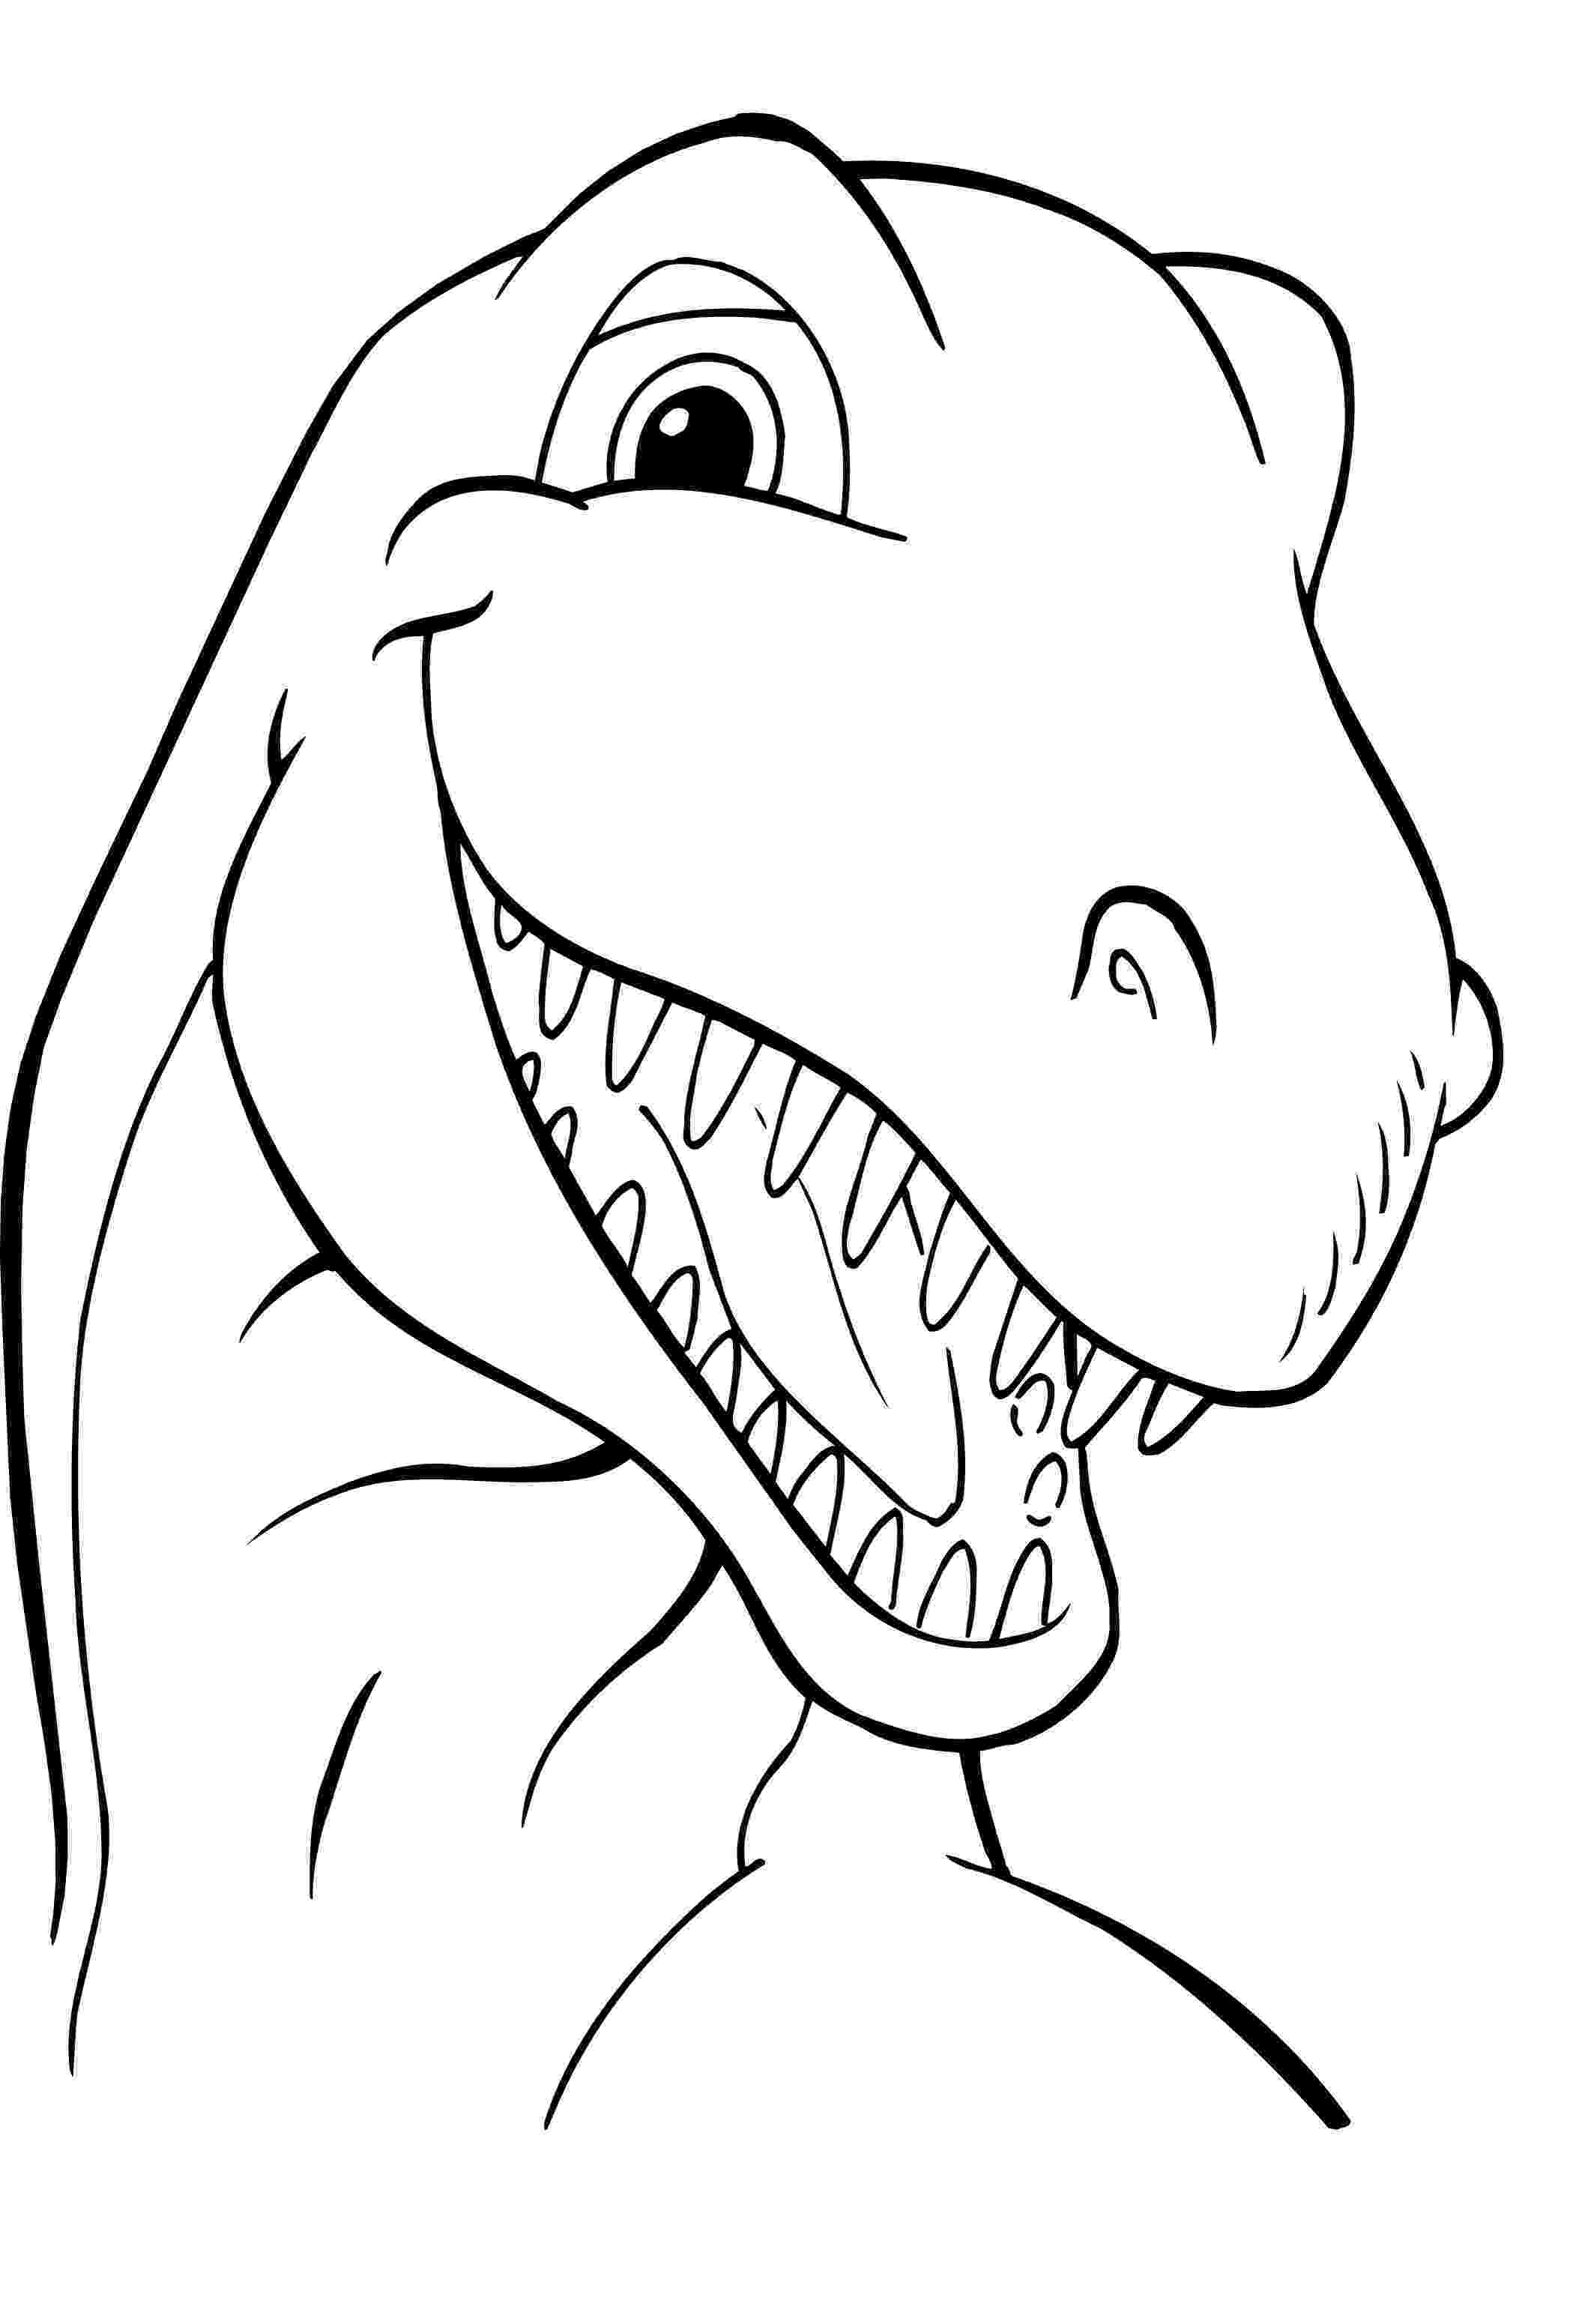 dinosaur colouring pictures to print free printable dinosaur coloring pages for kids dinosaur pictures colouring to print